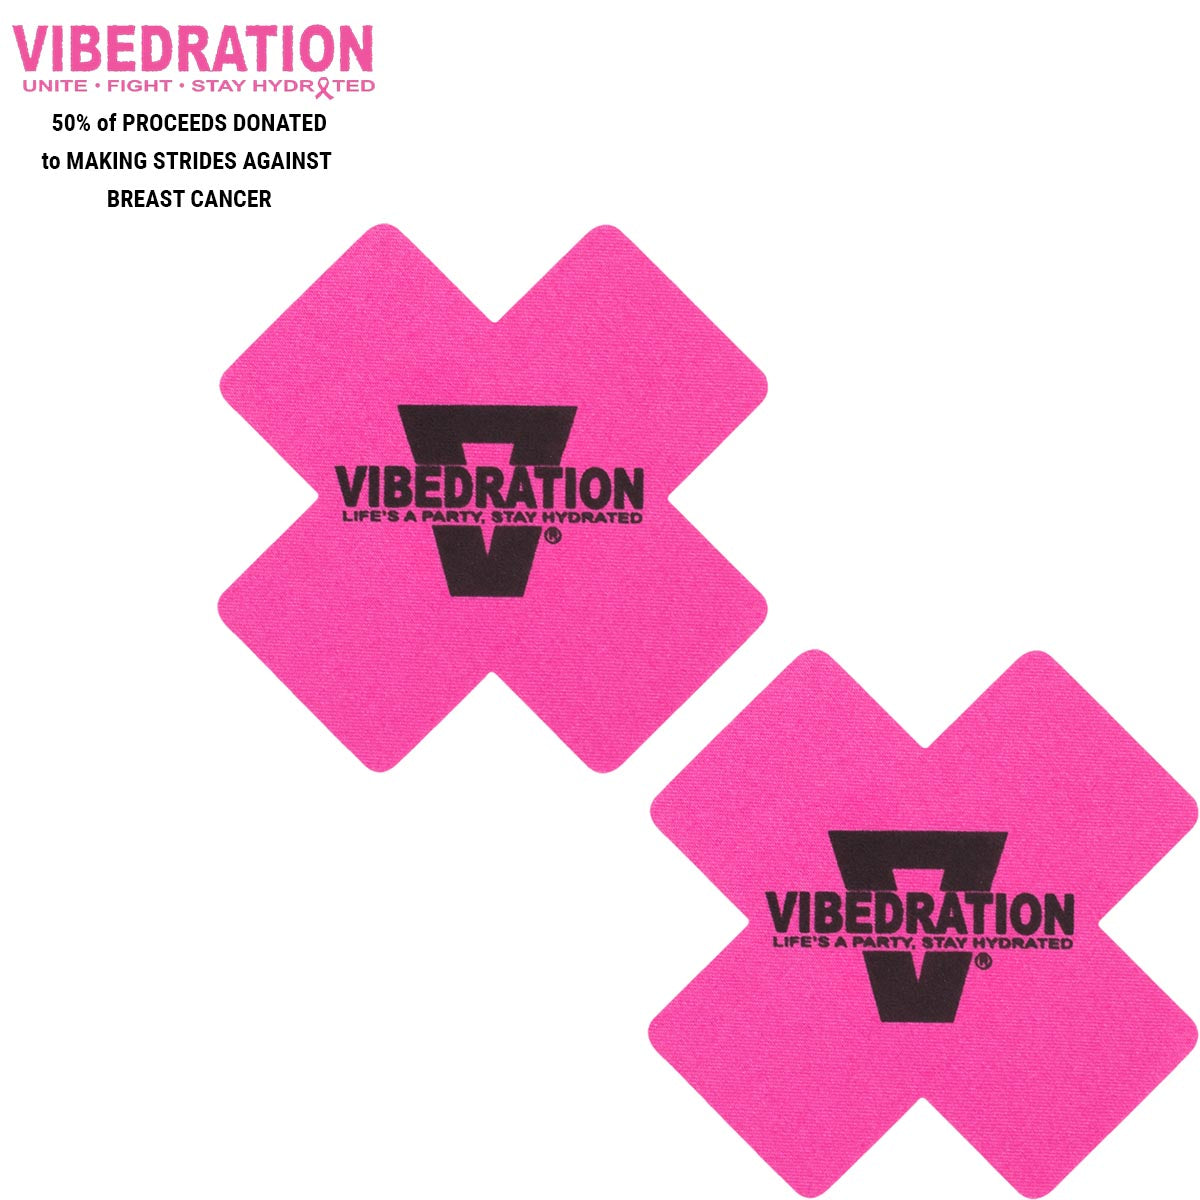 Pair of pink pasties with Vibedration logo